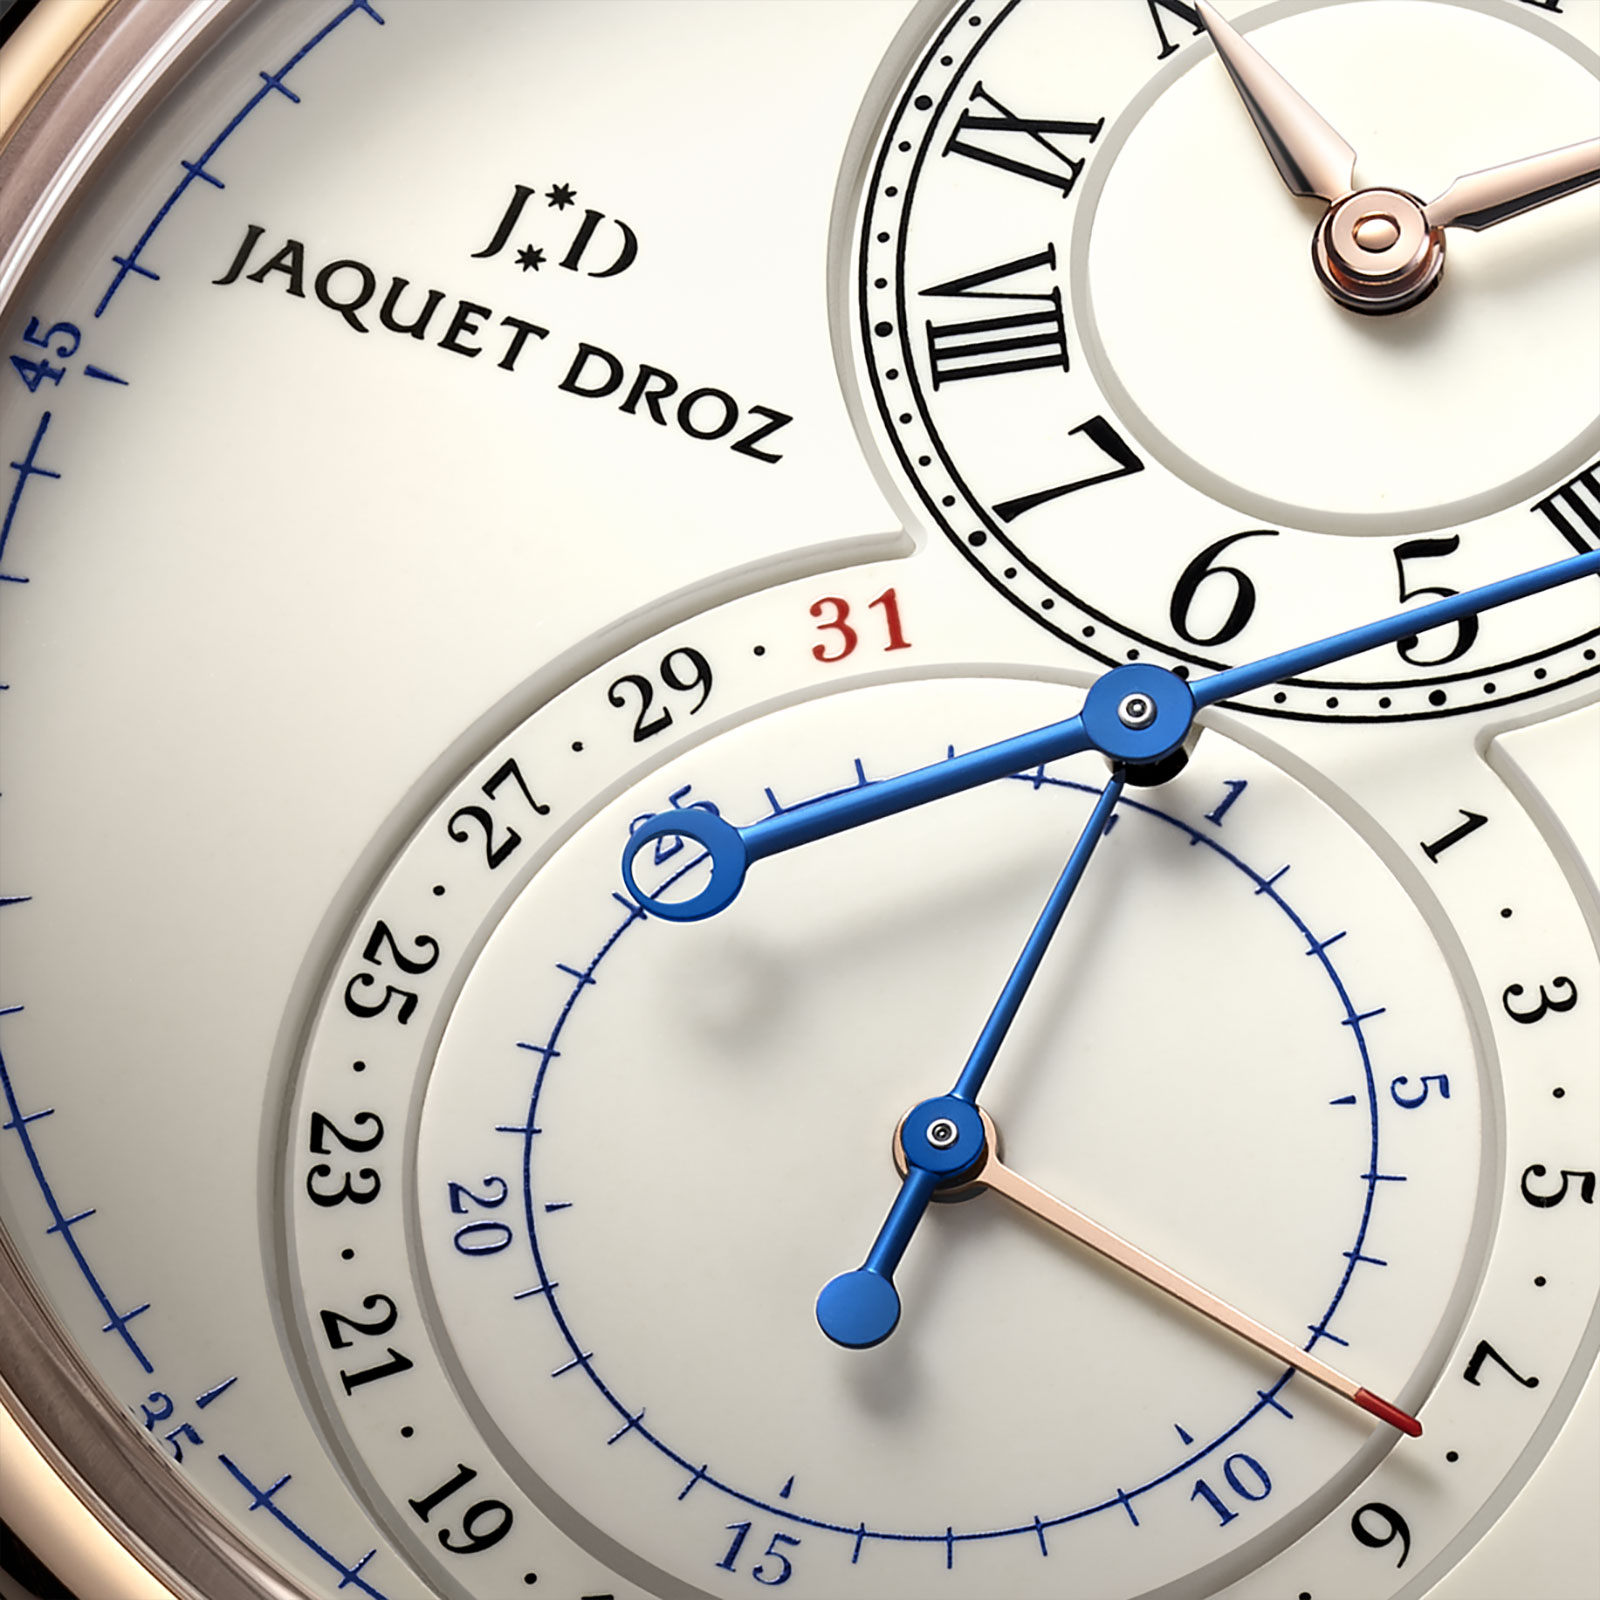 jaquet droz grande seconde chronograph gold enamel